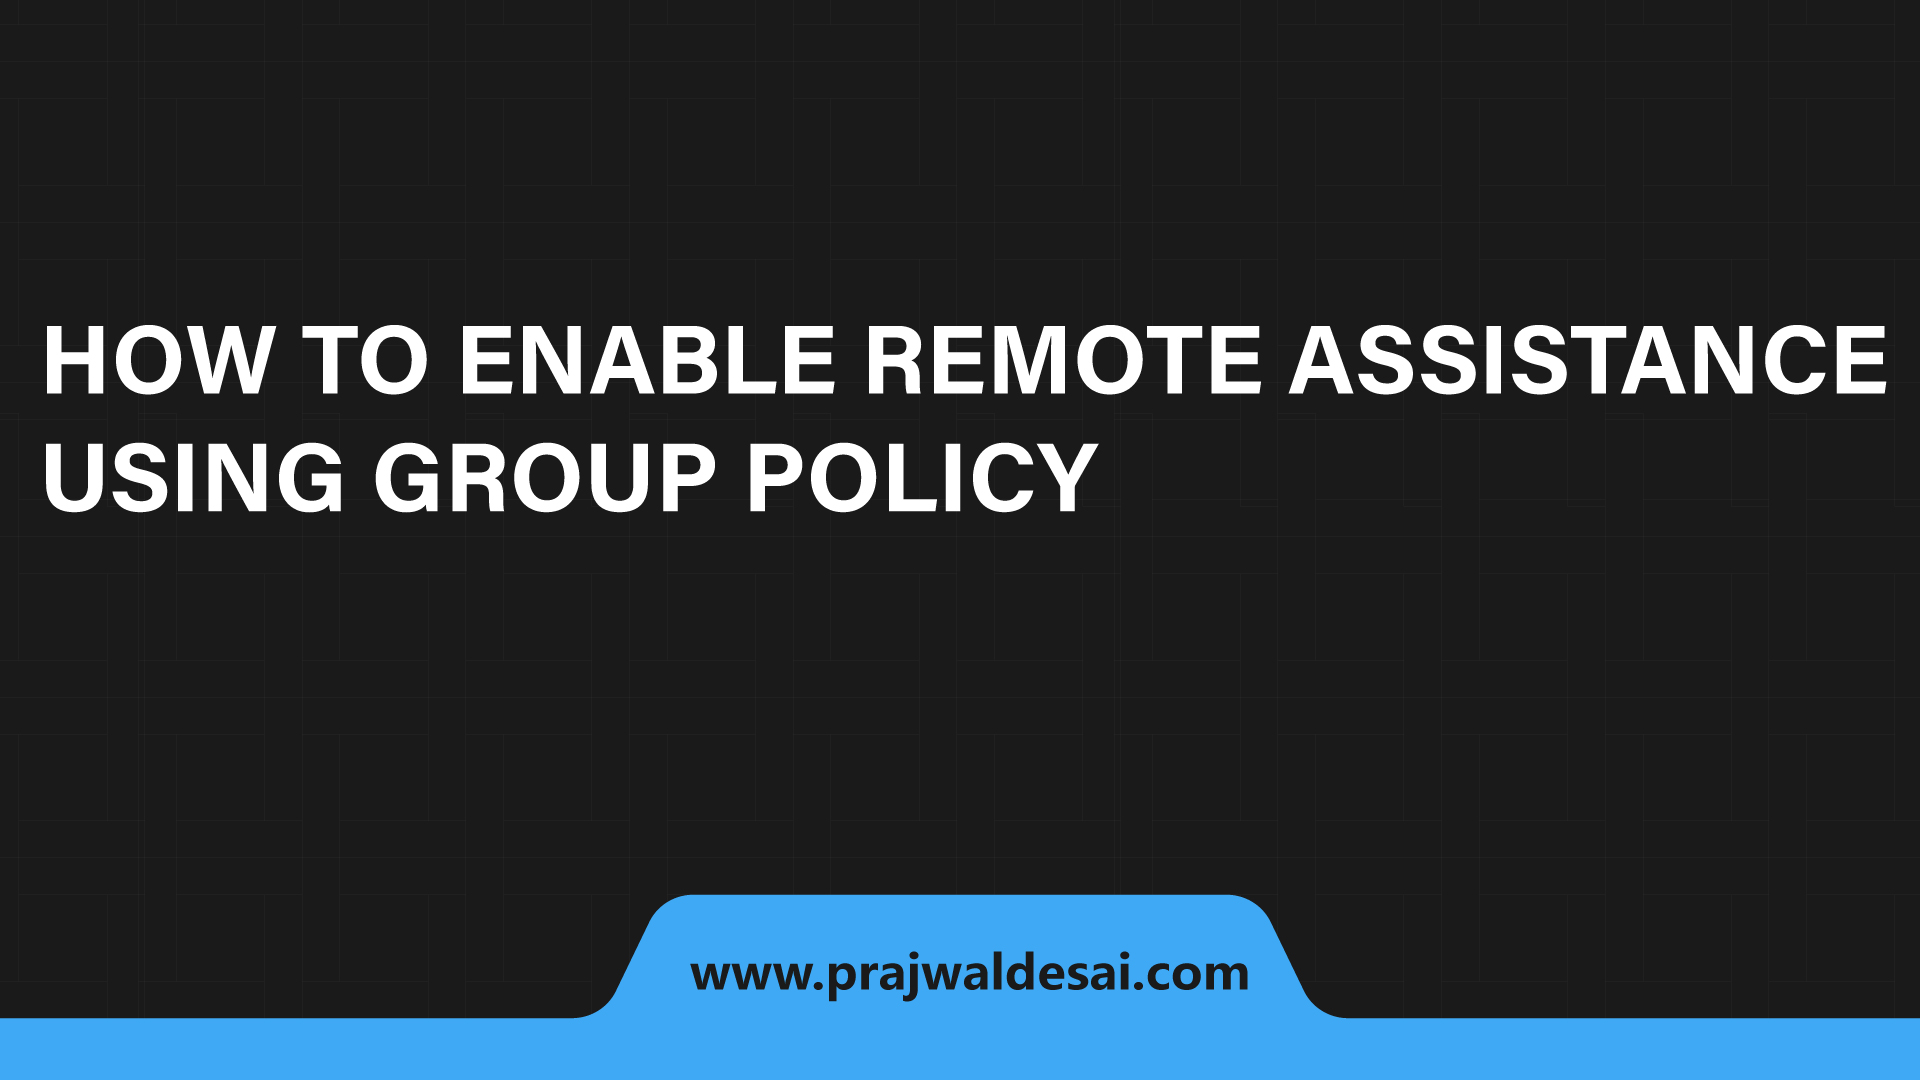 How to Enable Remote Assistance Using Group Policy